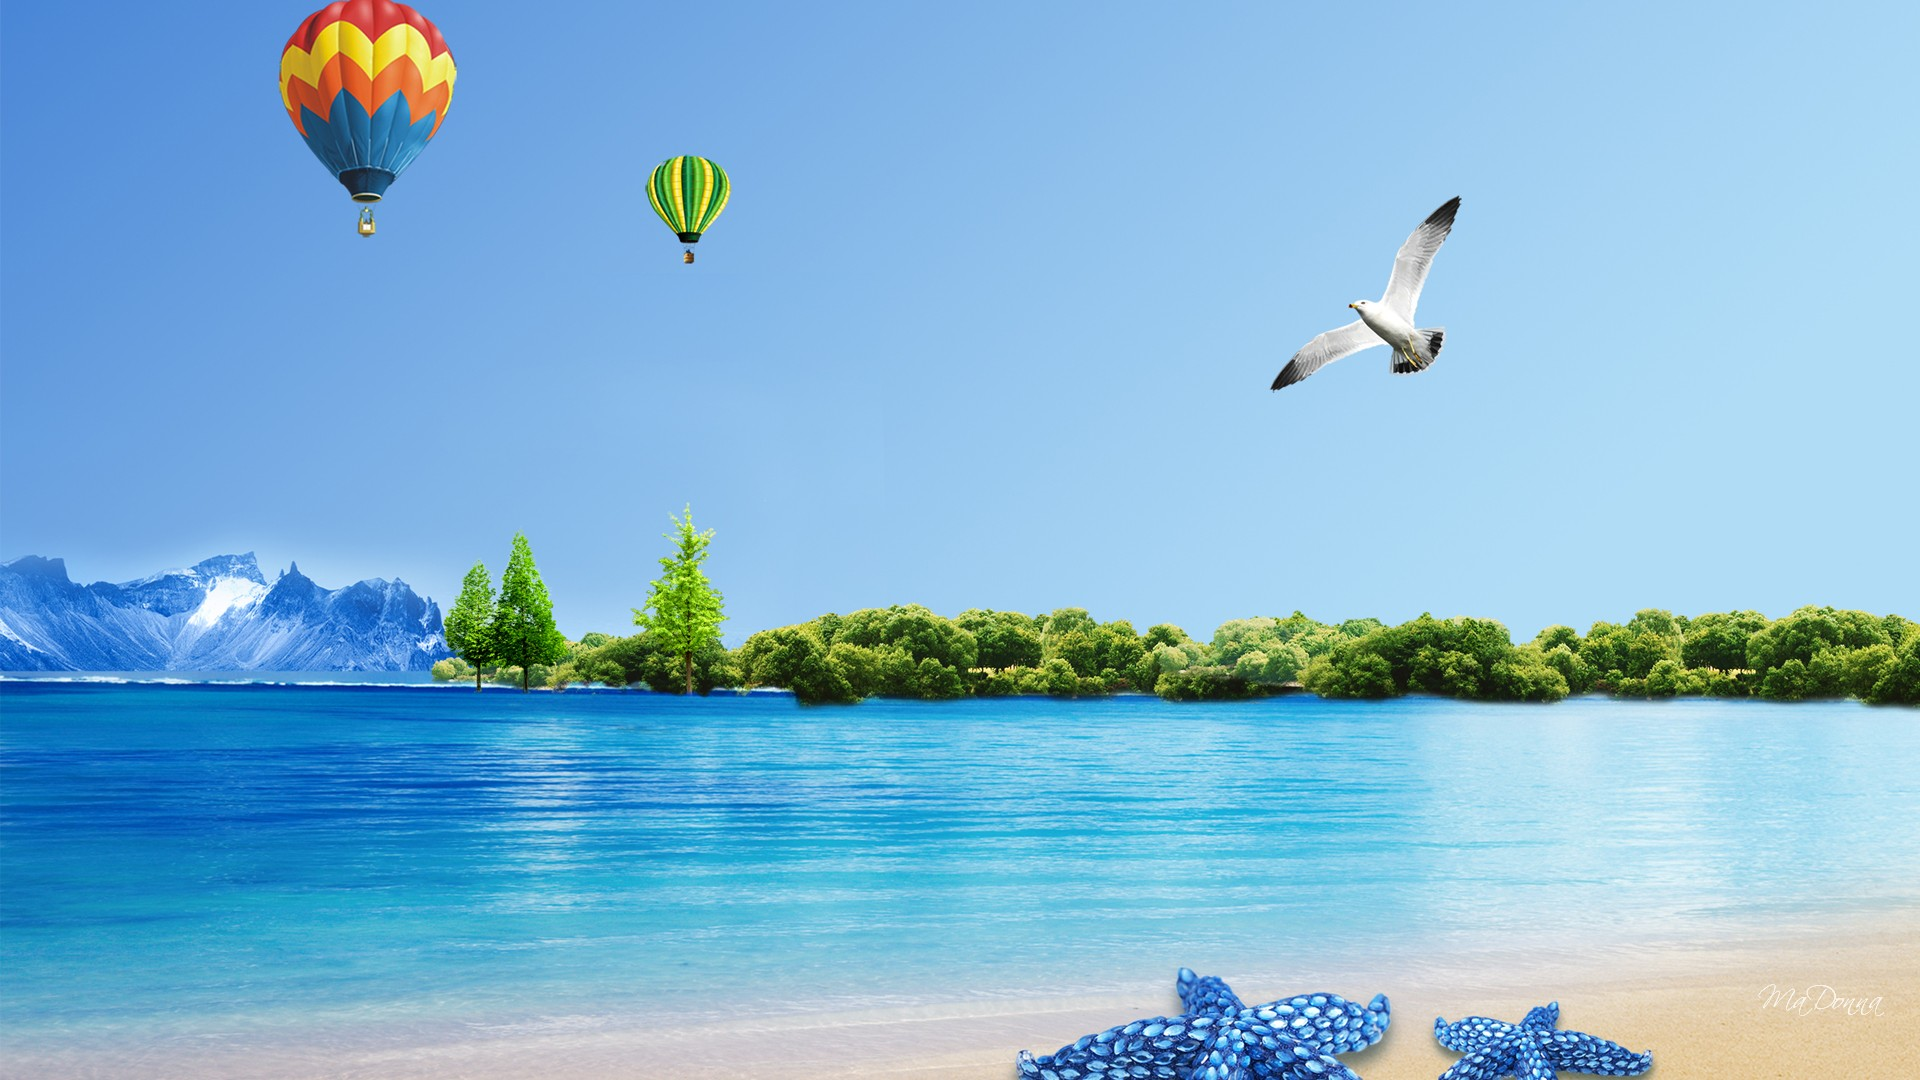 Summer Wallpapers   First HD Wallpapers 1920x1080